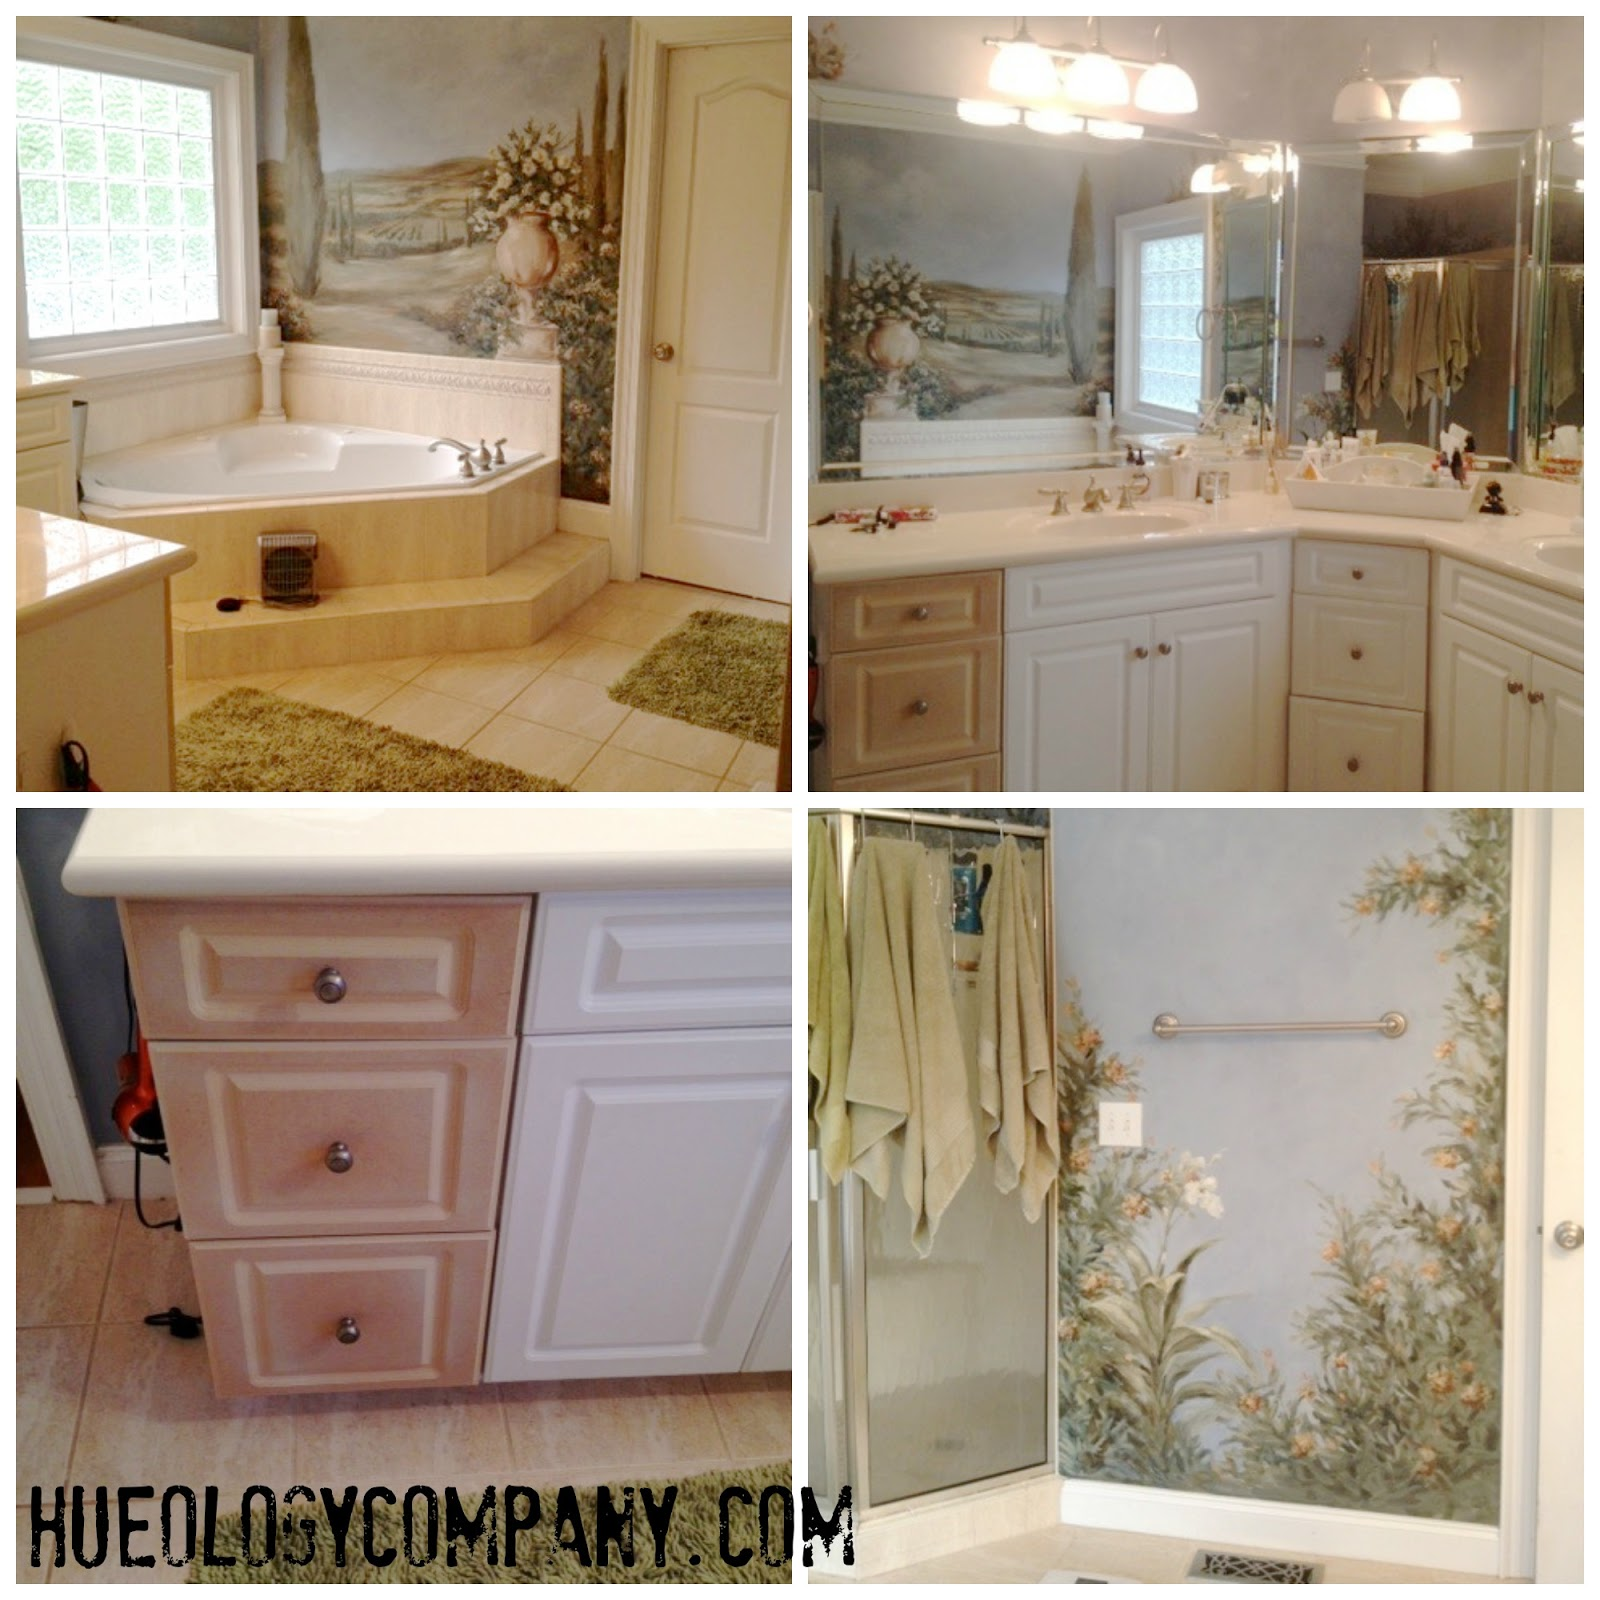 How To Repaint Bathroom Cabinets White paris grey | hueology studio